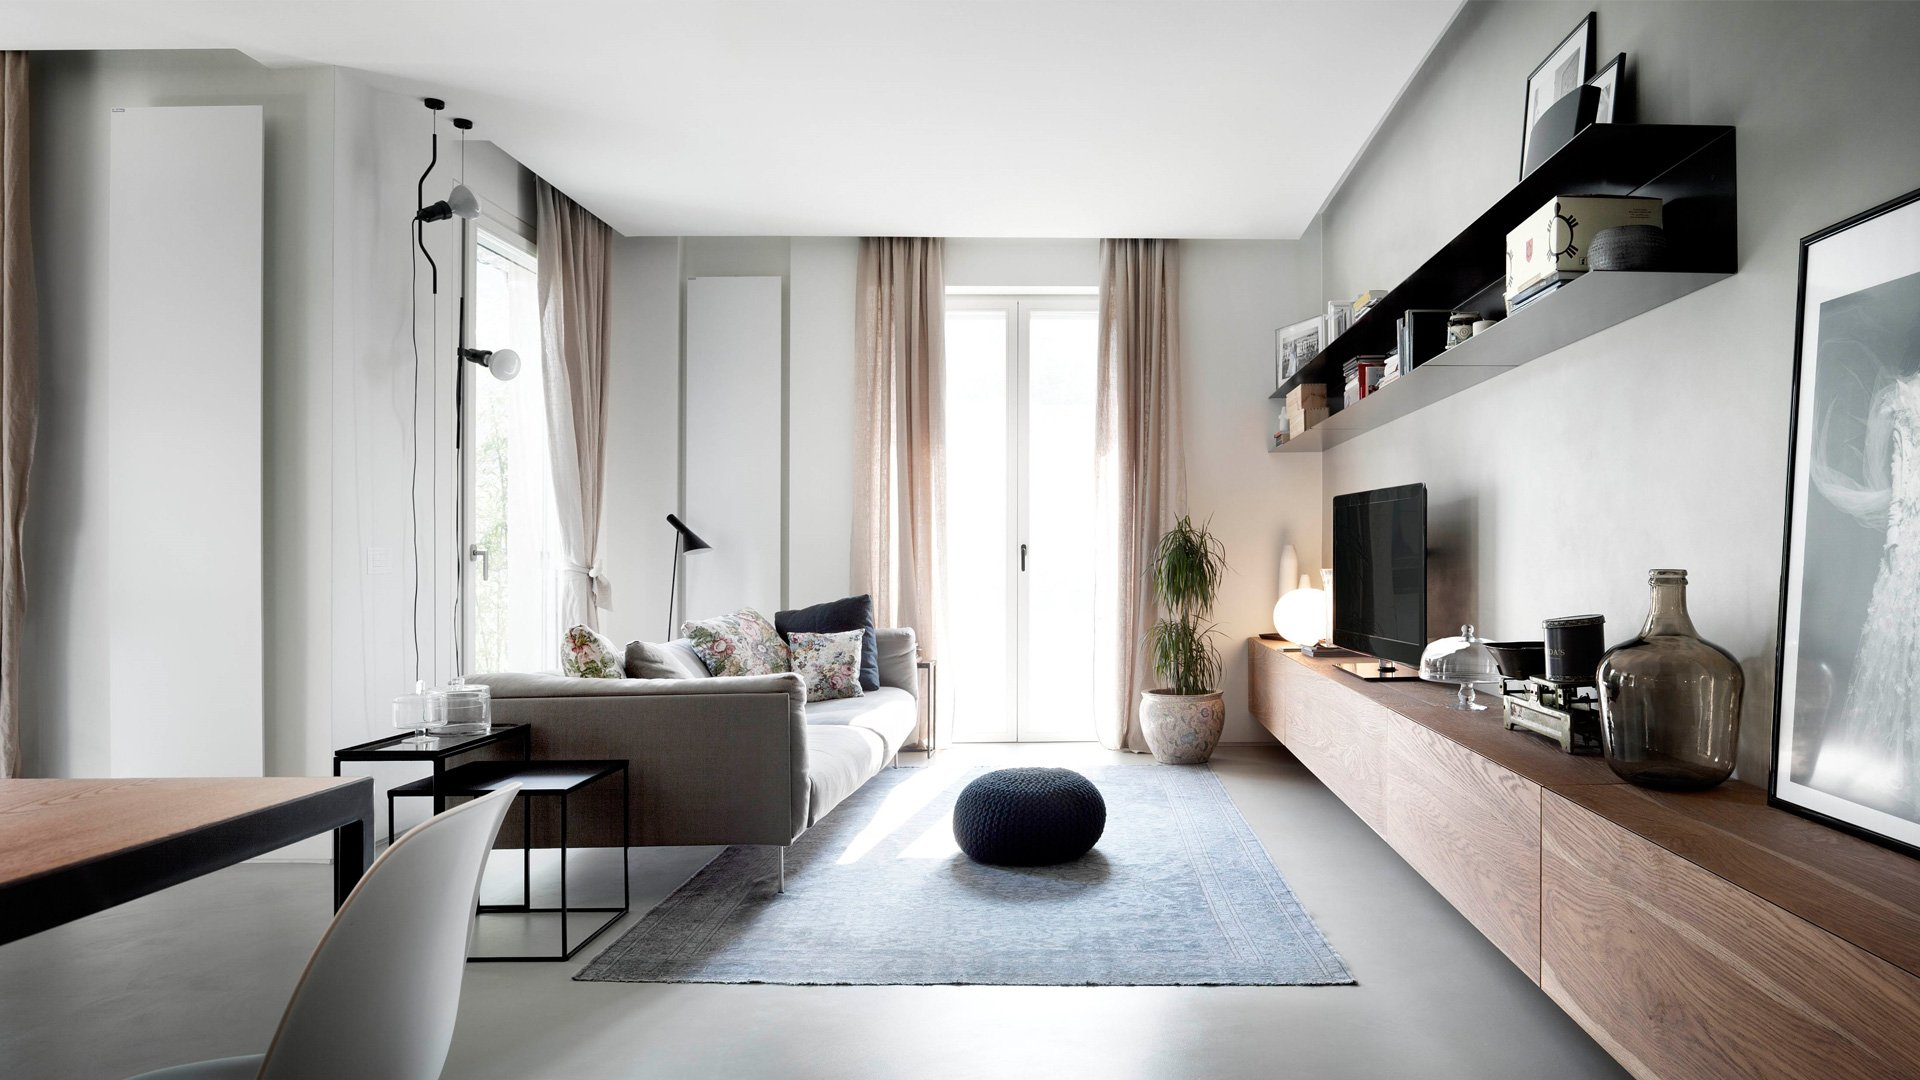 MAAD Concepts Architects and Interior Designers